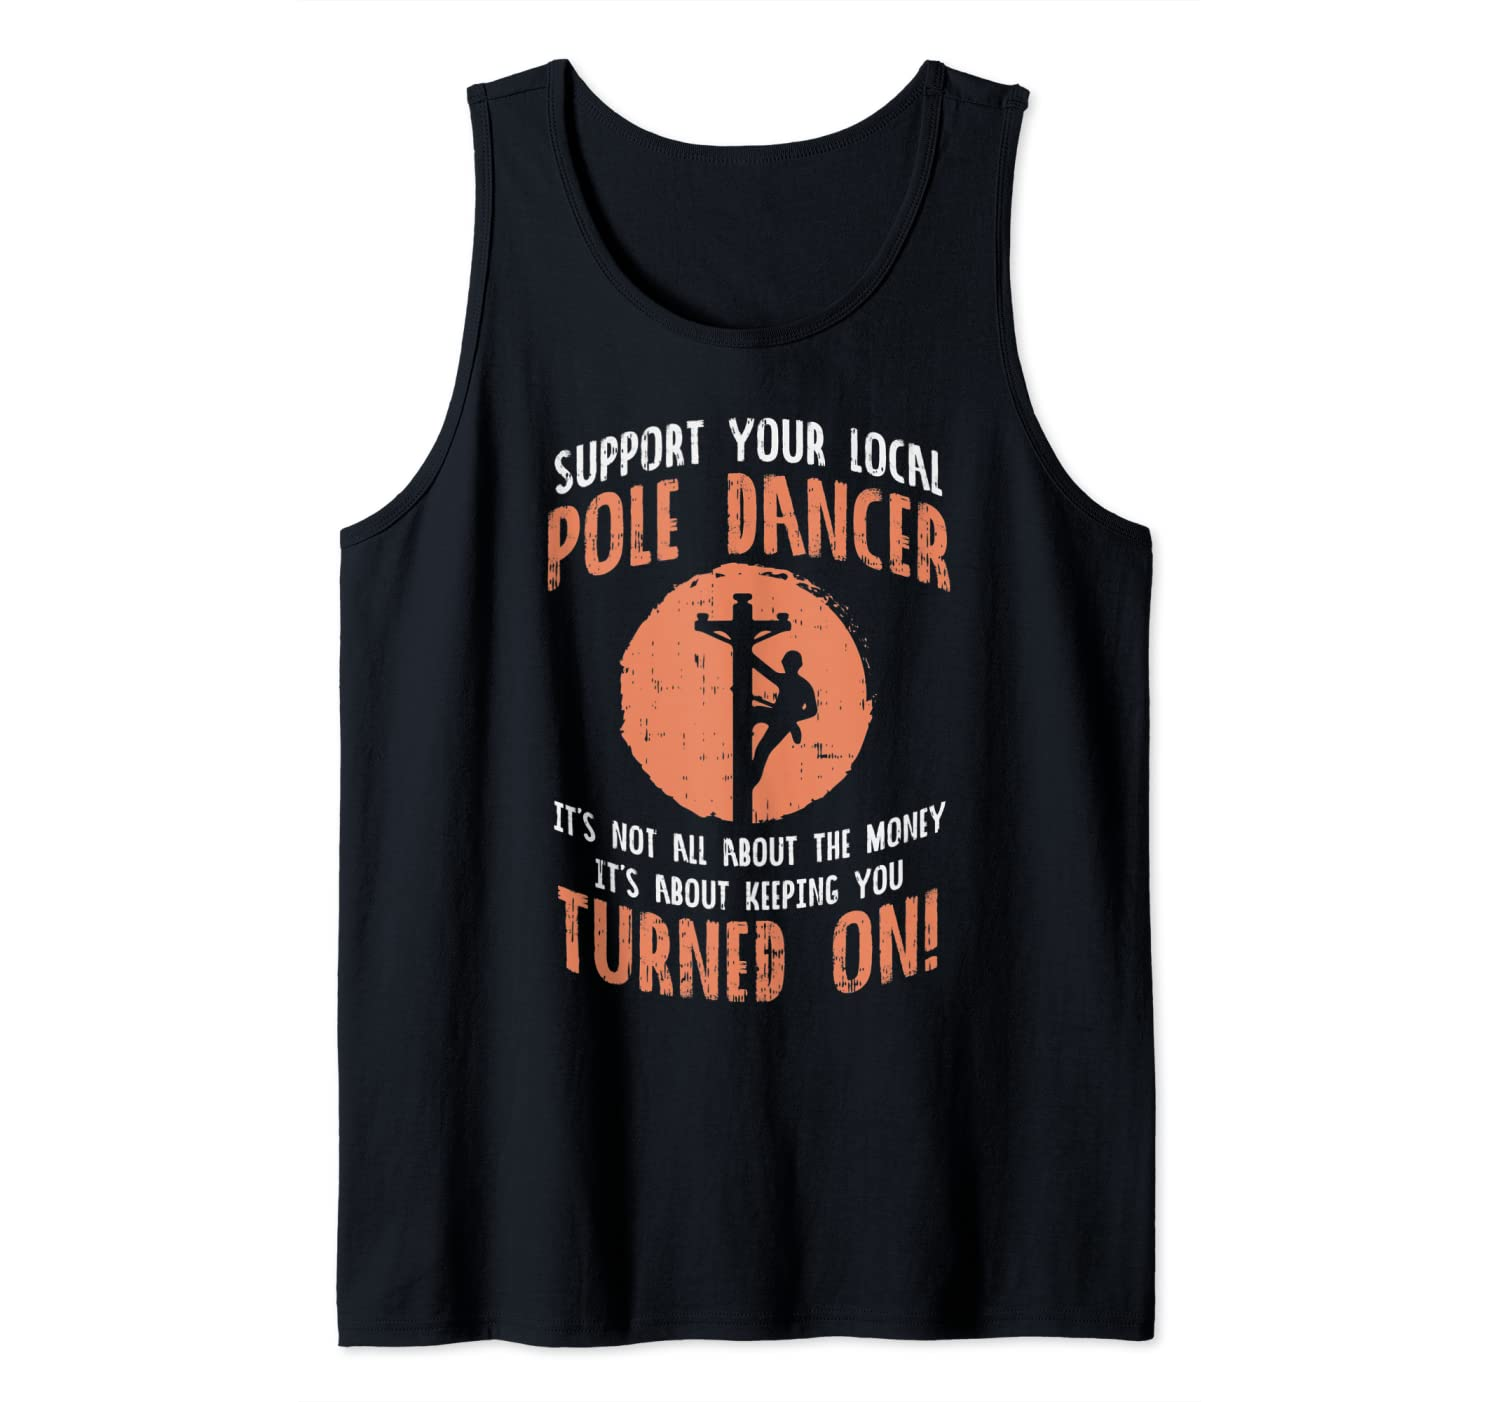 Support Your Local Pole Dancer Funny Electric Lineman Gift Tank Top